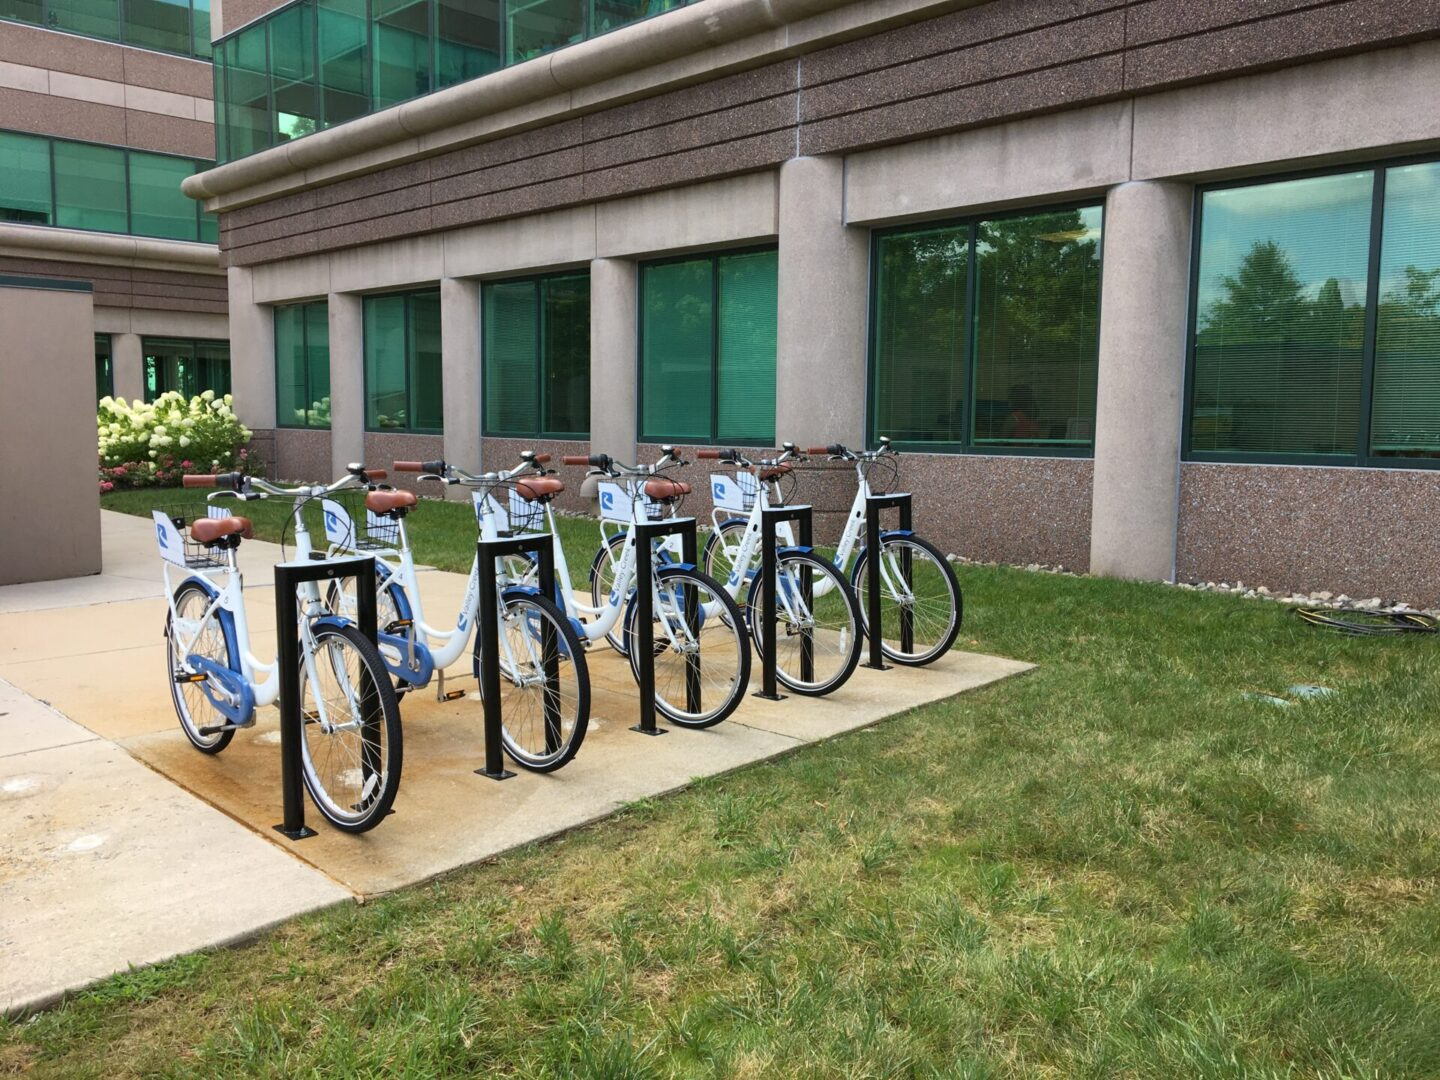 Five bicycles in front of a building with many windows